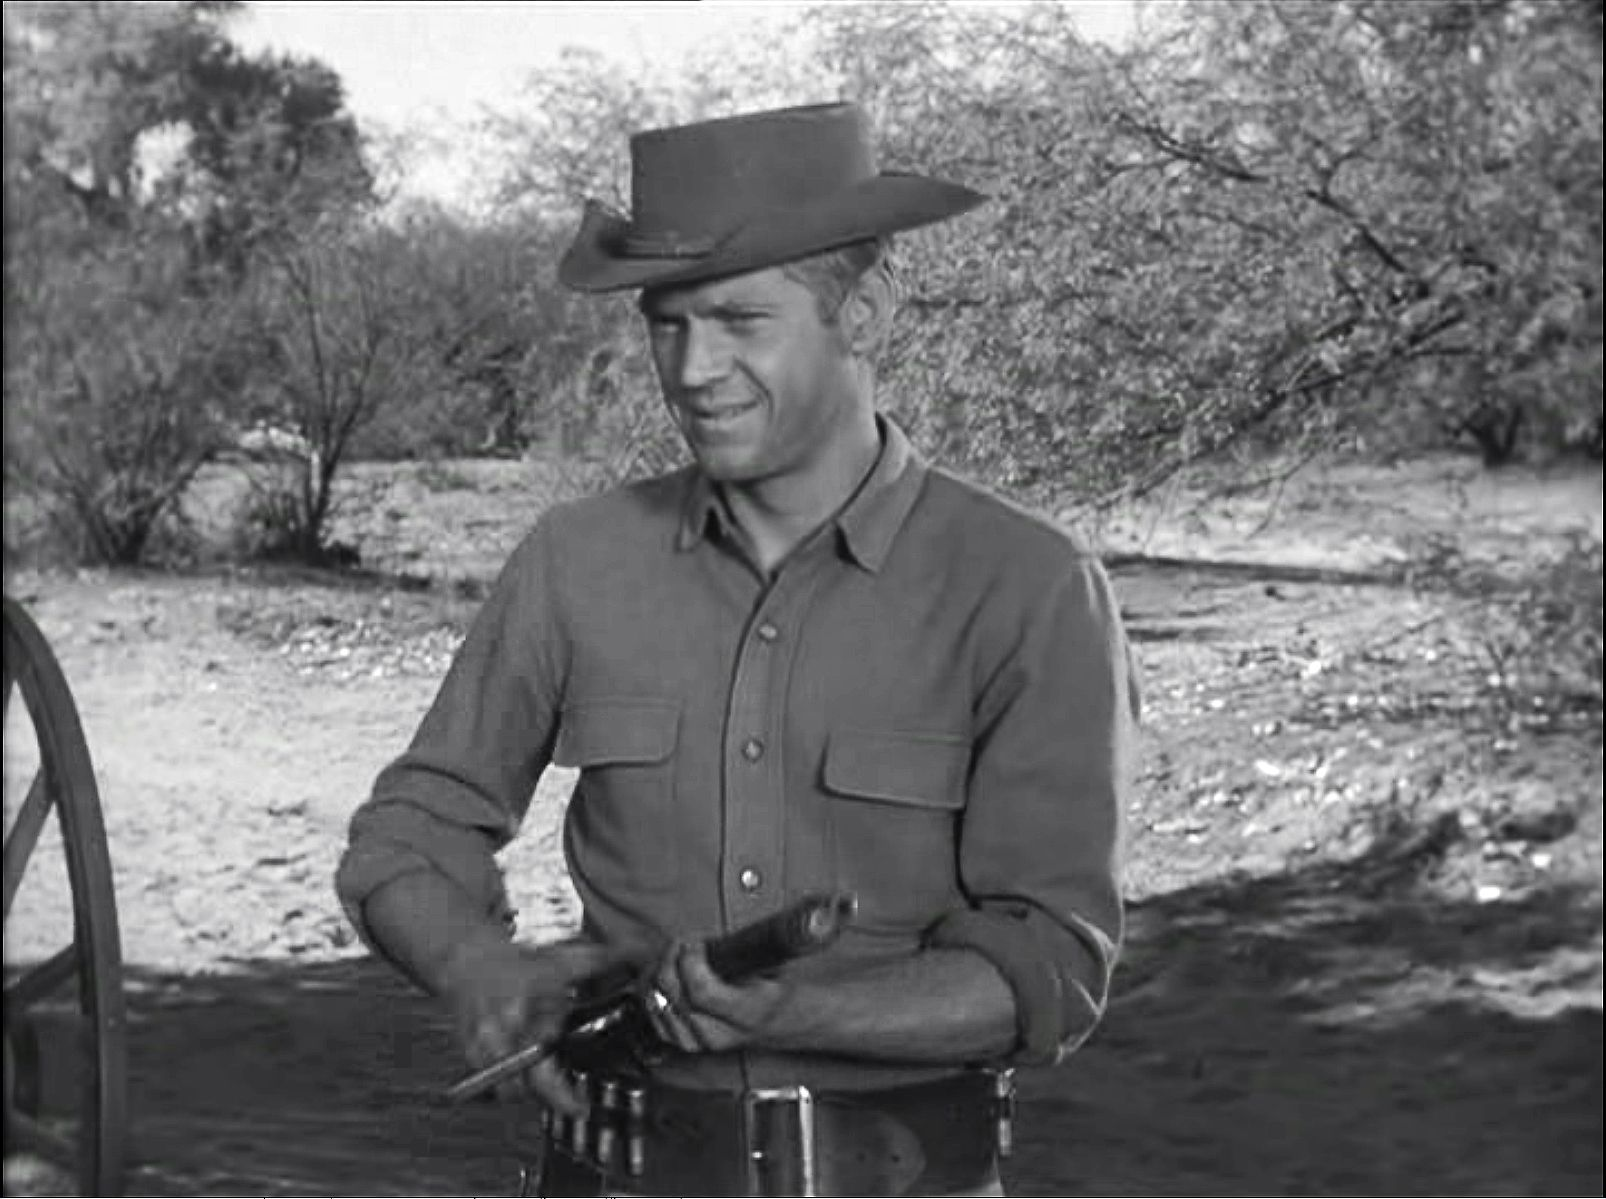 Steve Mcqueen Bounty Hunter Wanted Dead Or Alive Season 1 Six Up From Bannock